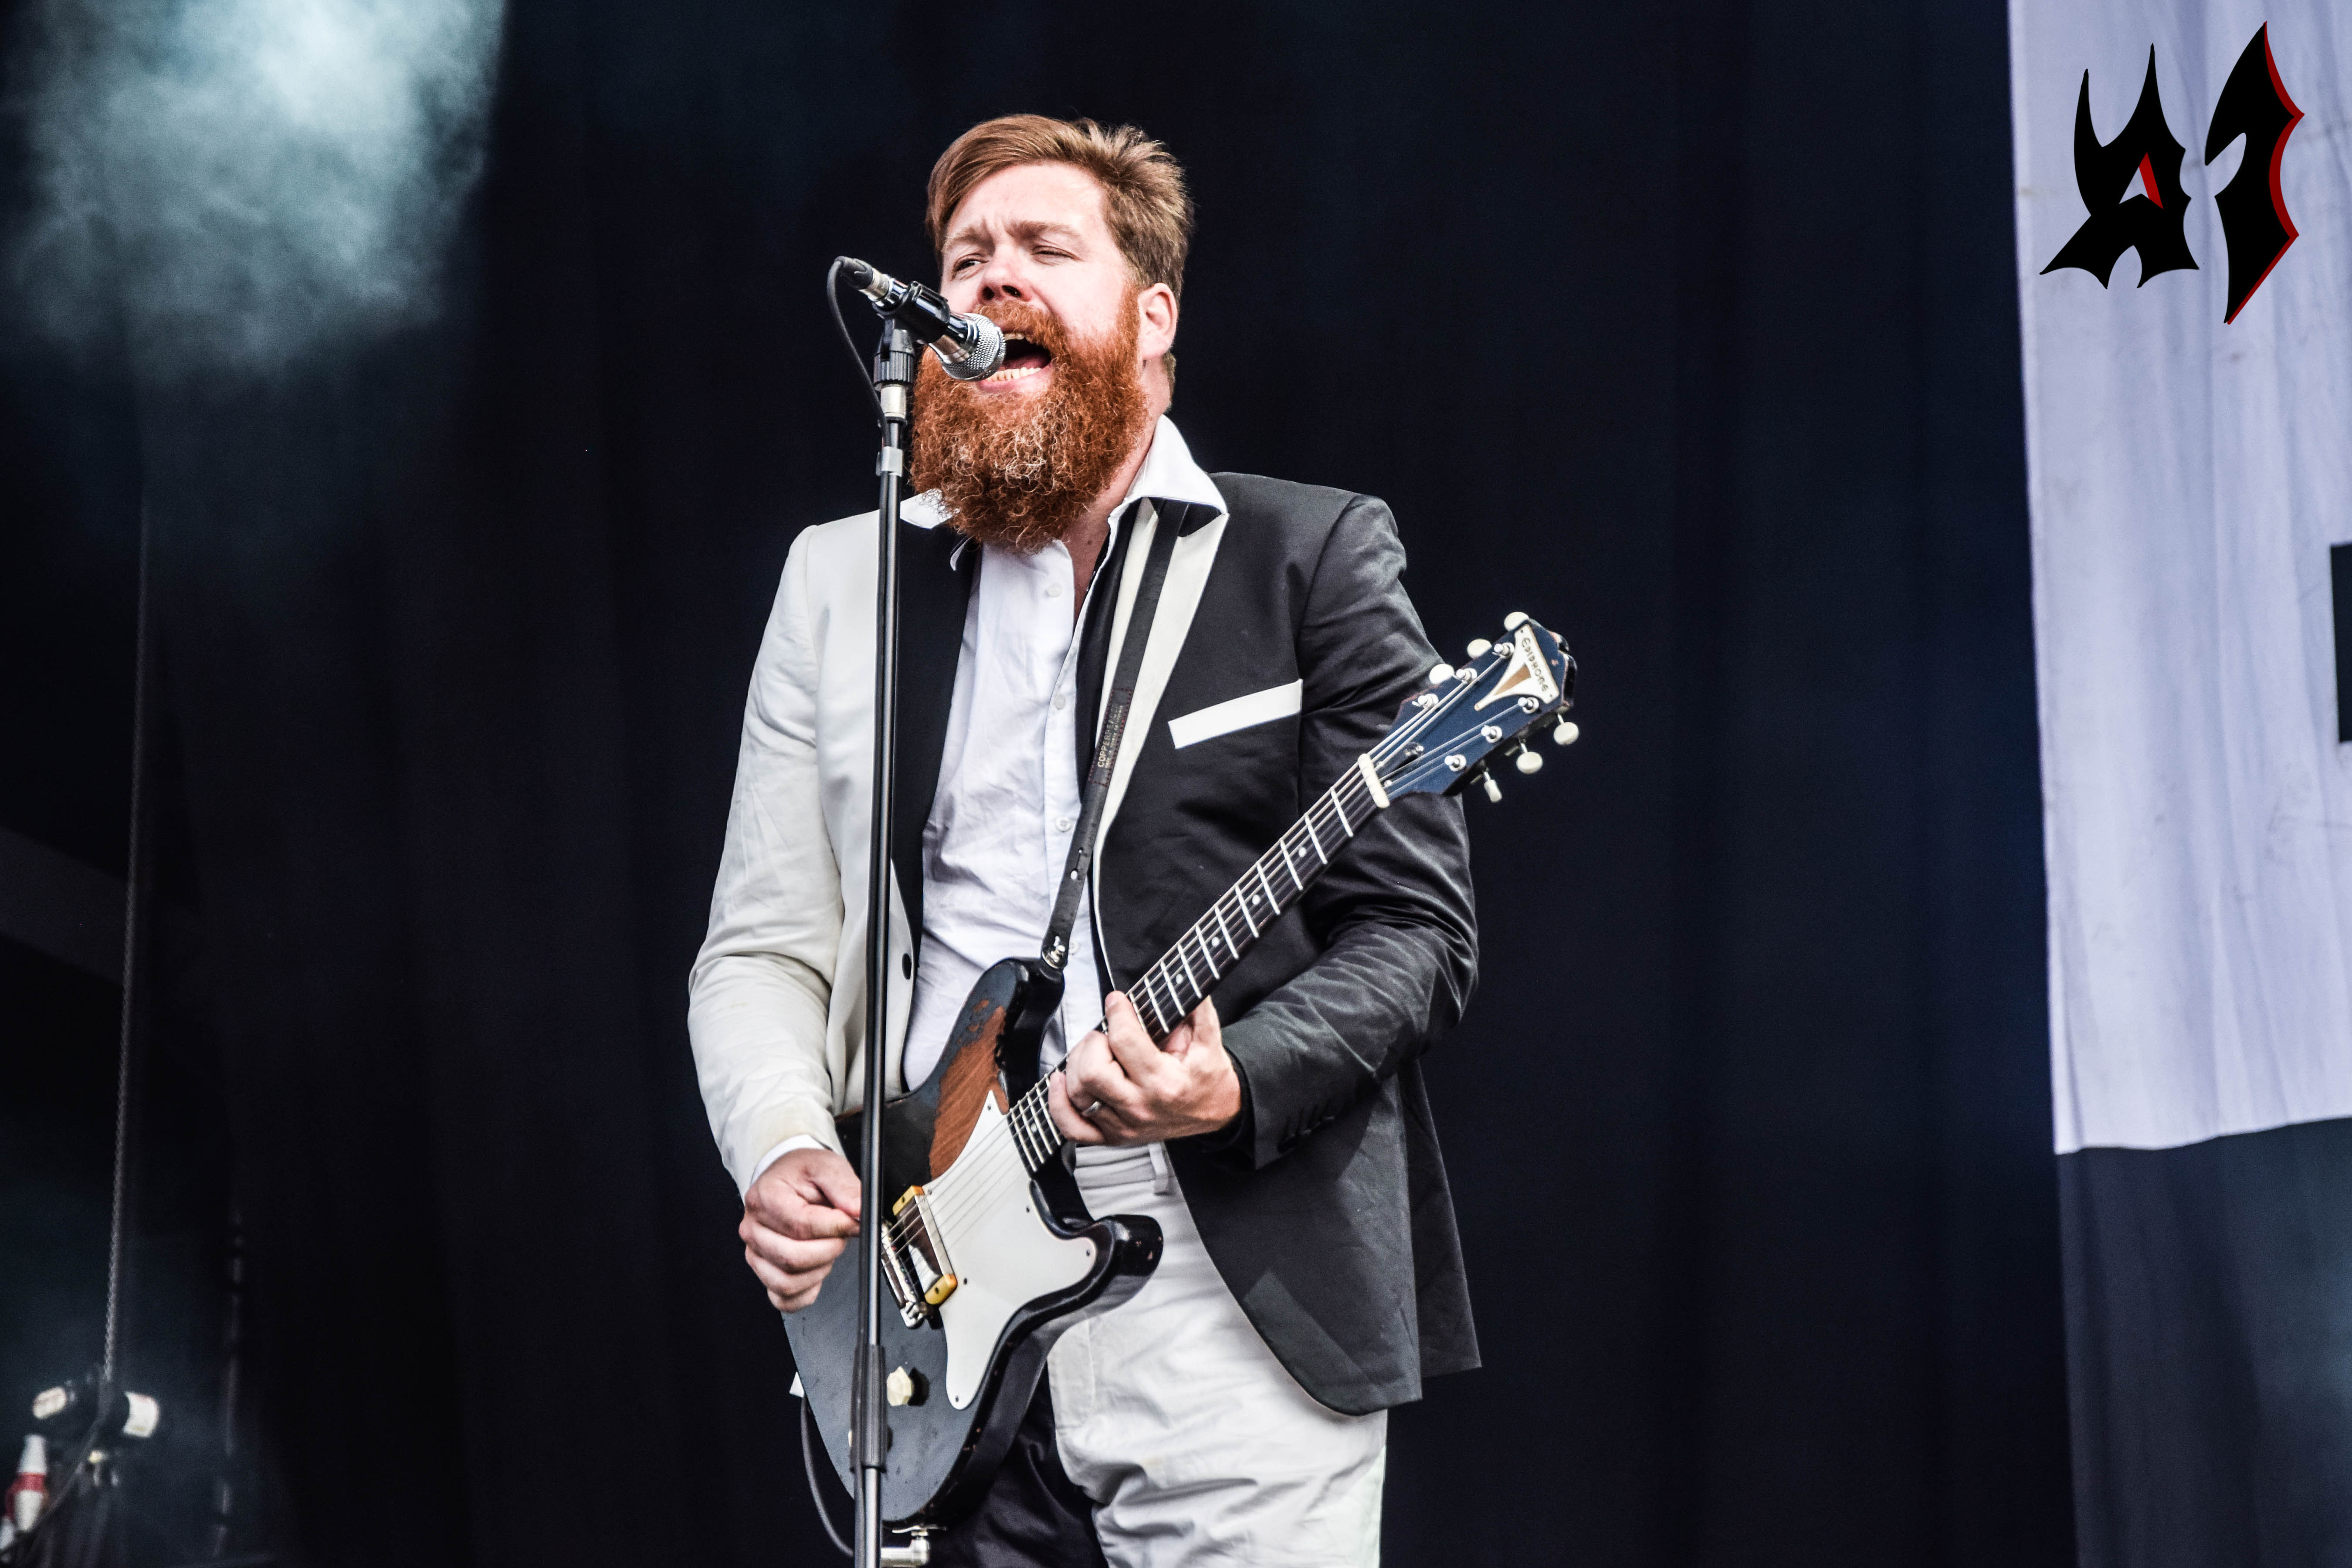 Donwload 2018 – Day 3 - The Hives 8